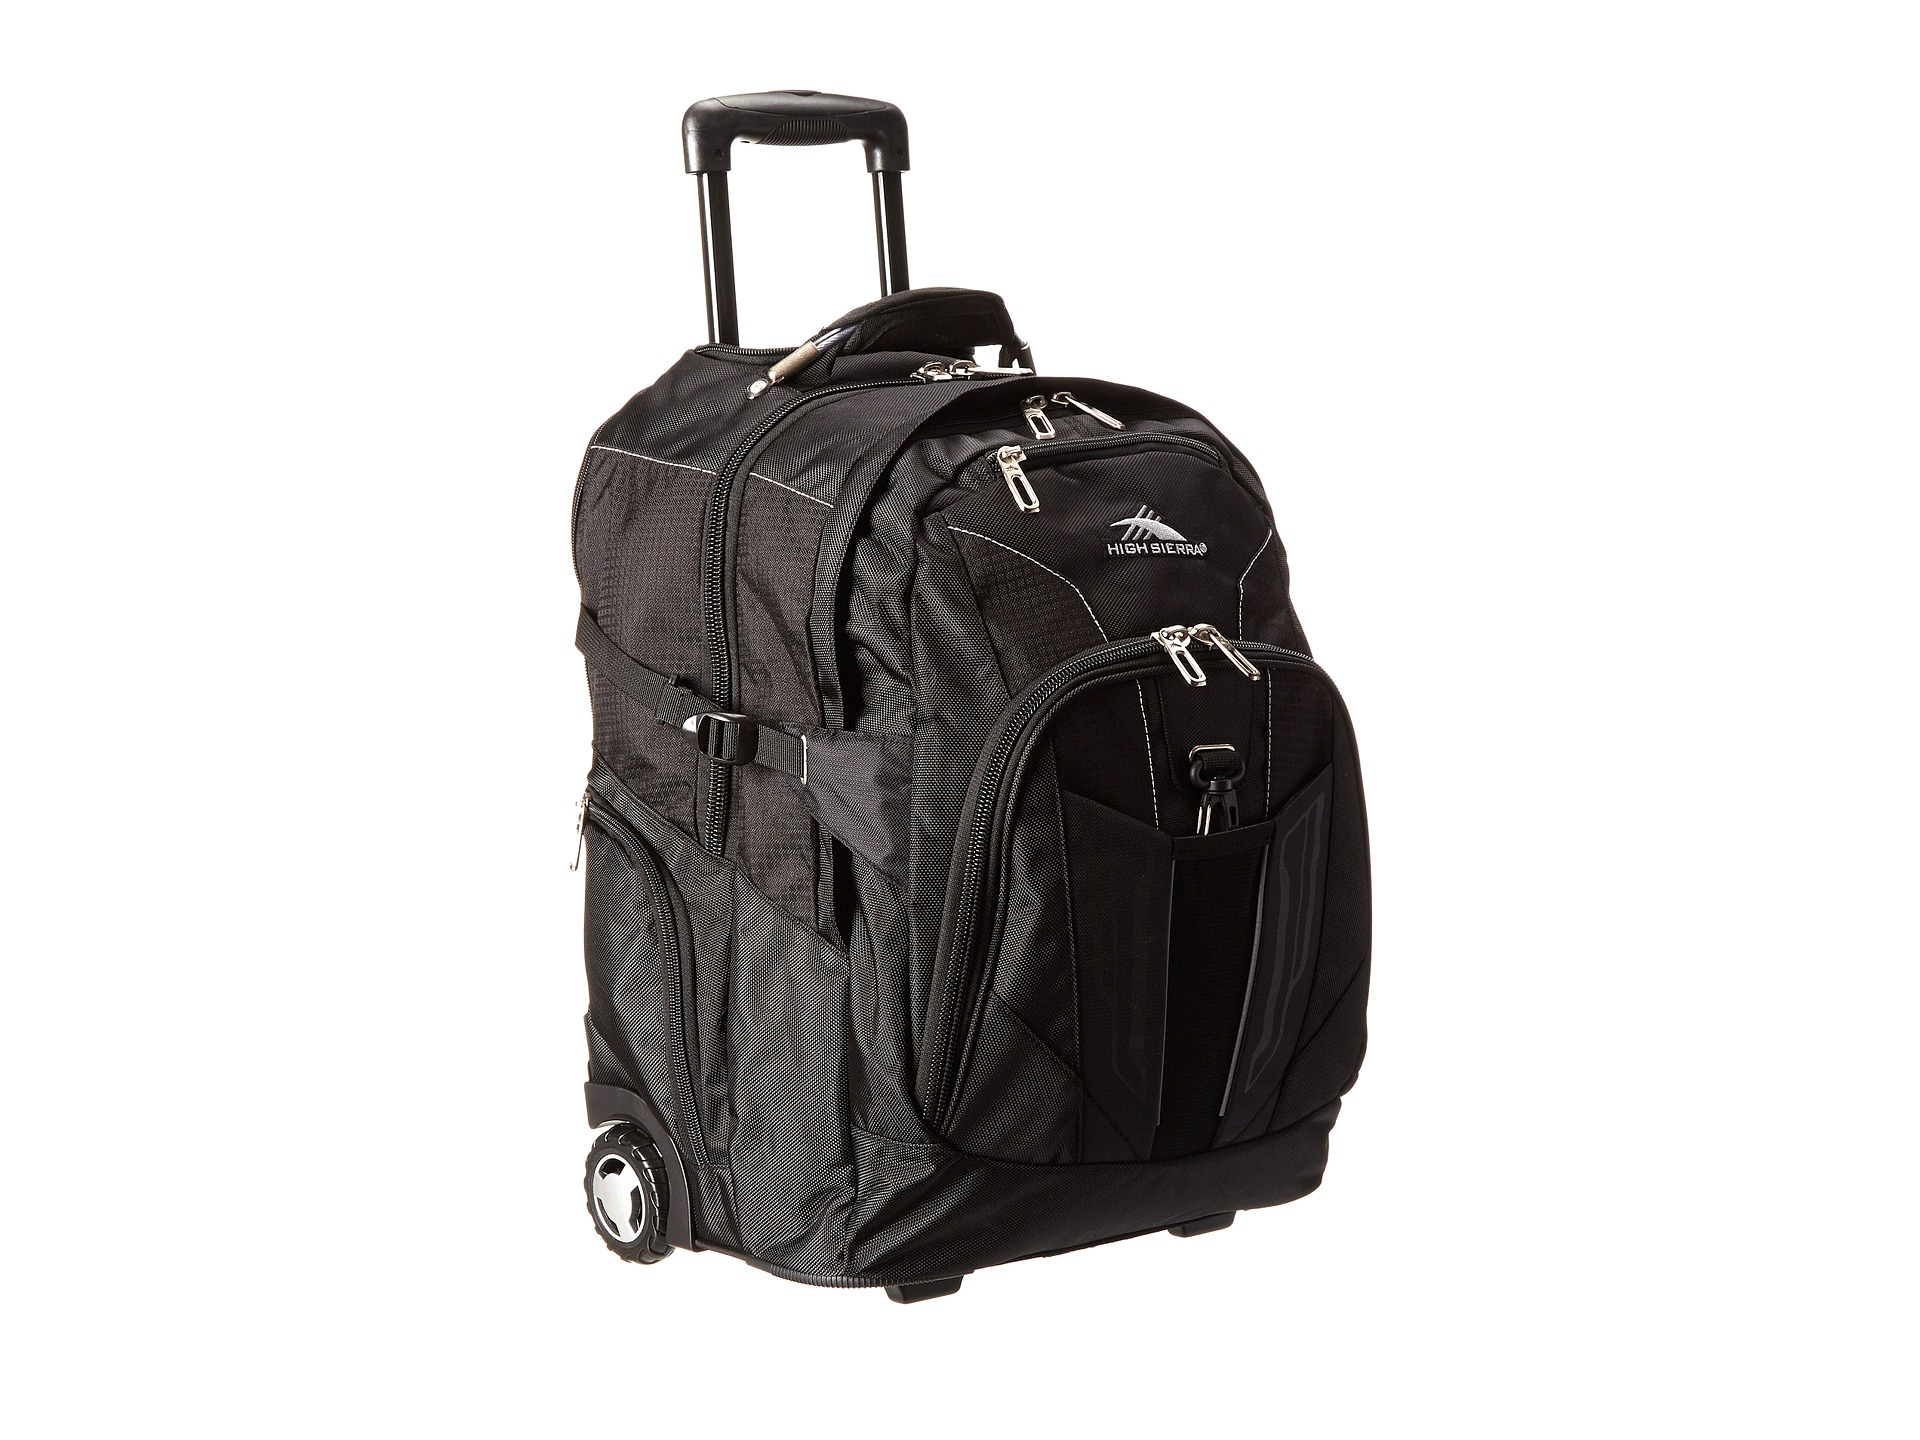 Wheeled Backpacks, Bags | Shipped Free at Zappos